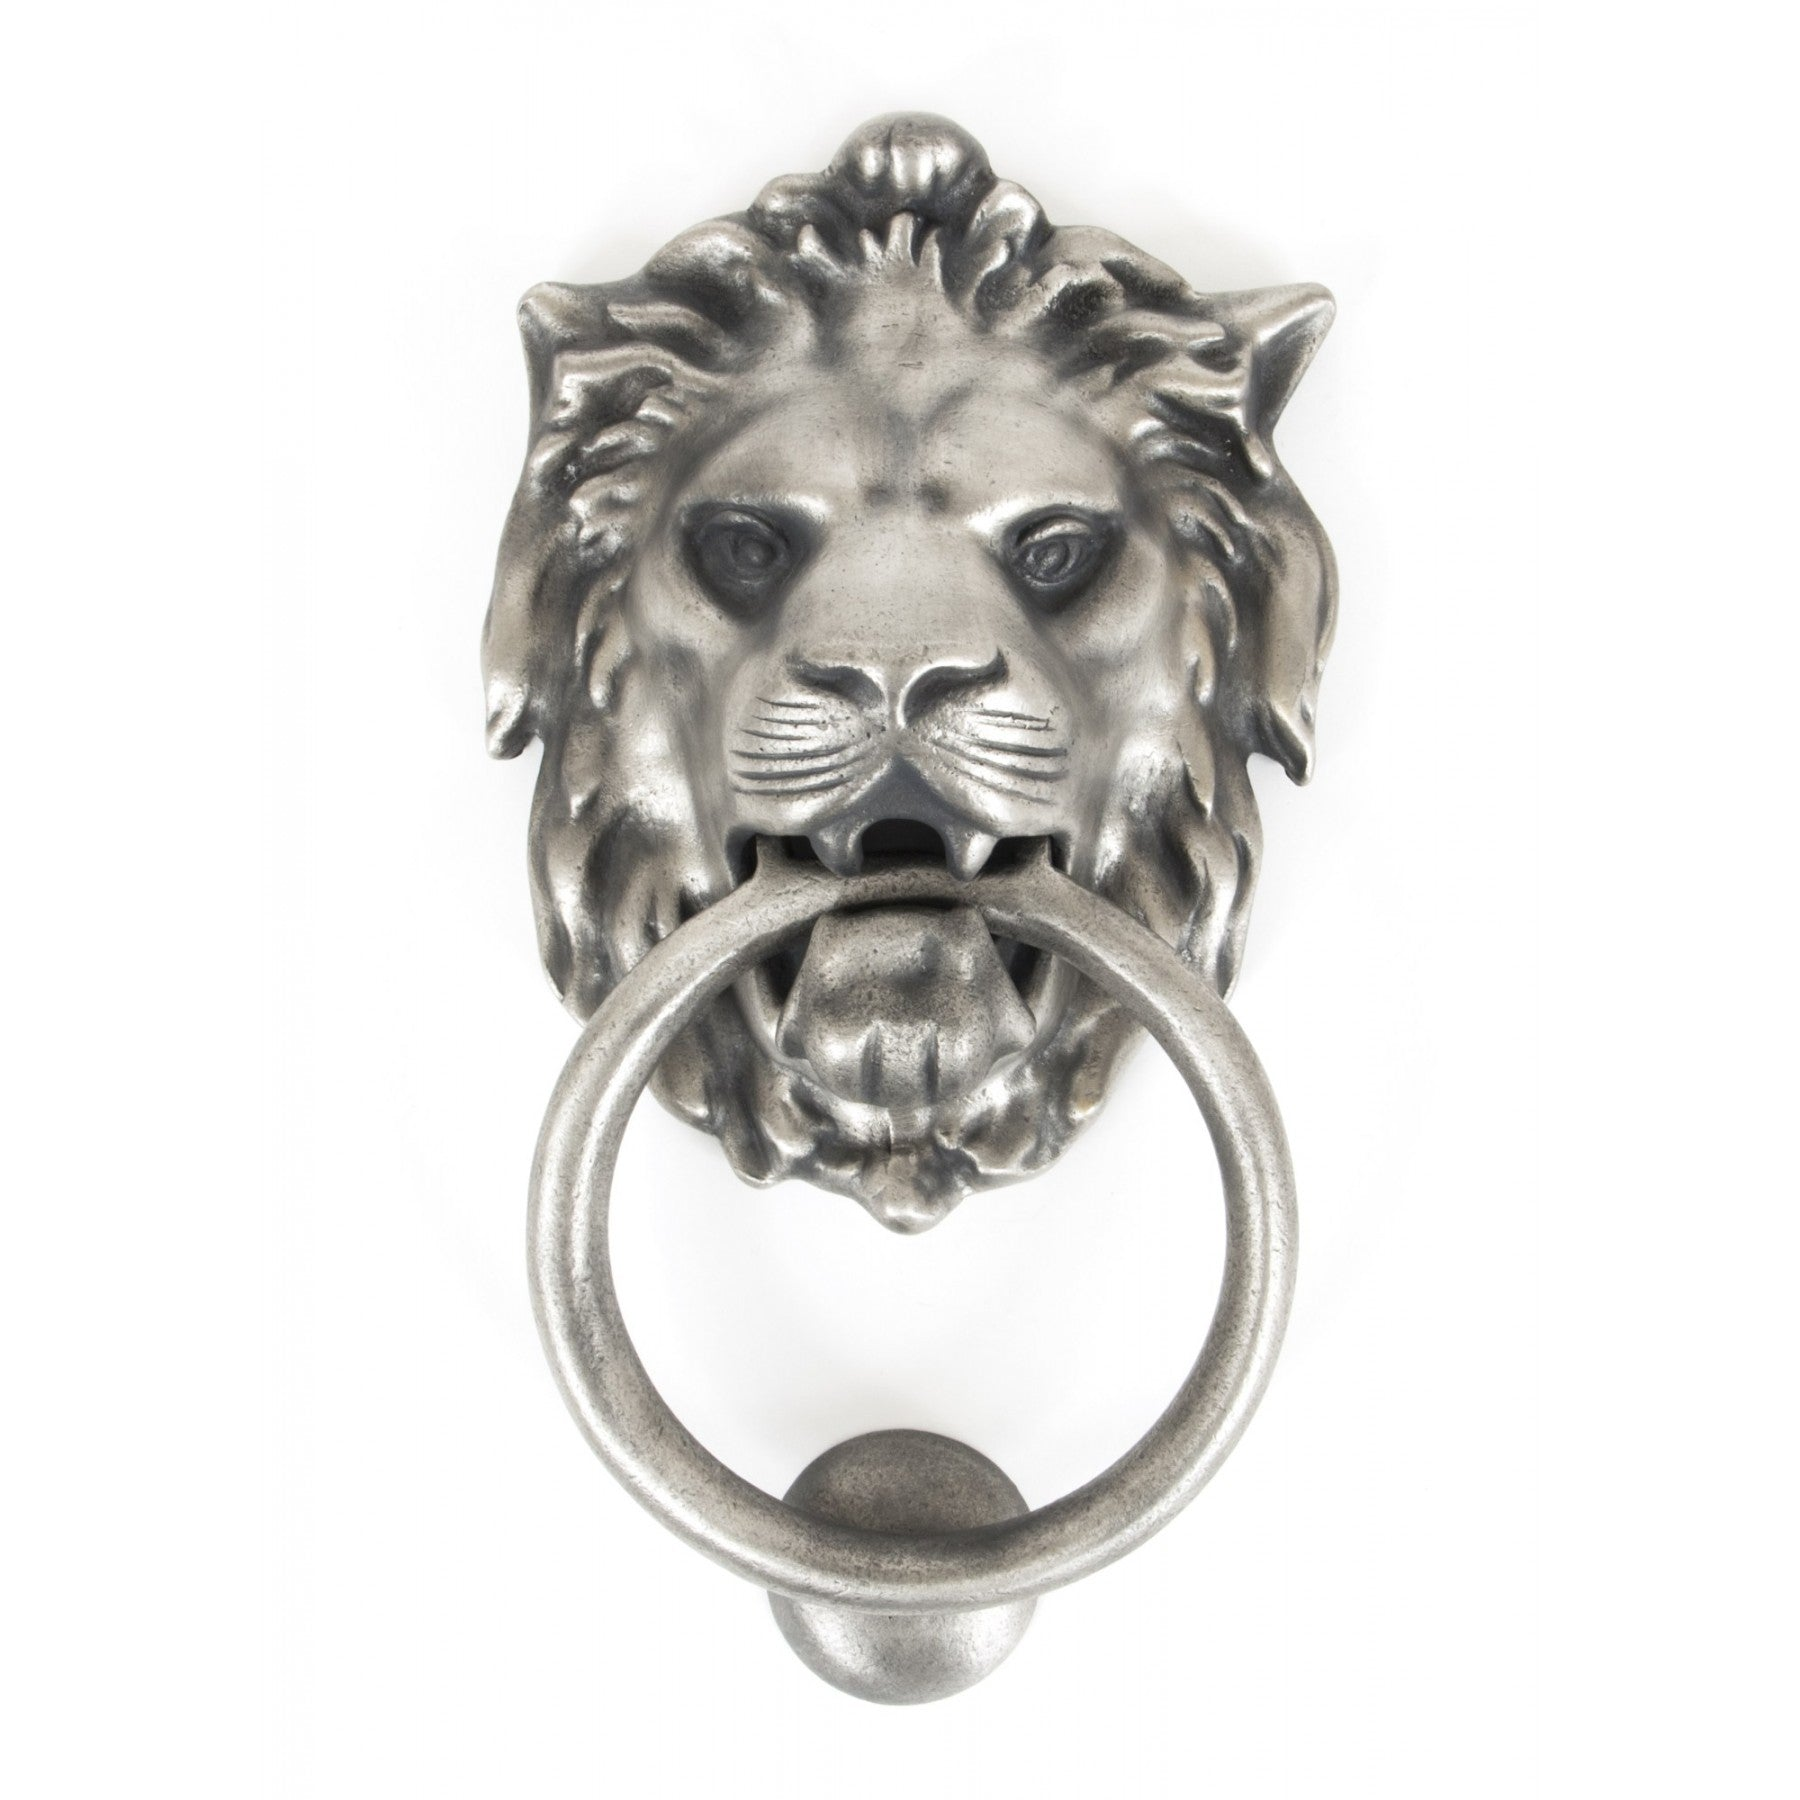 Lion's Head Door Knocker - Antique Pewter